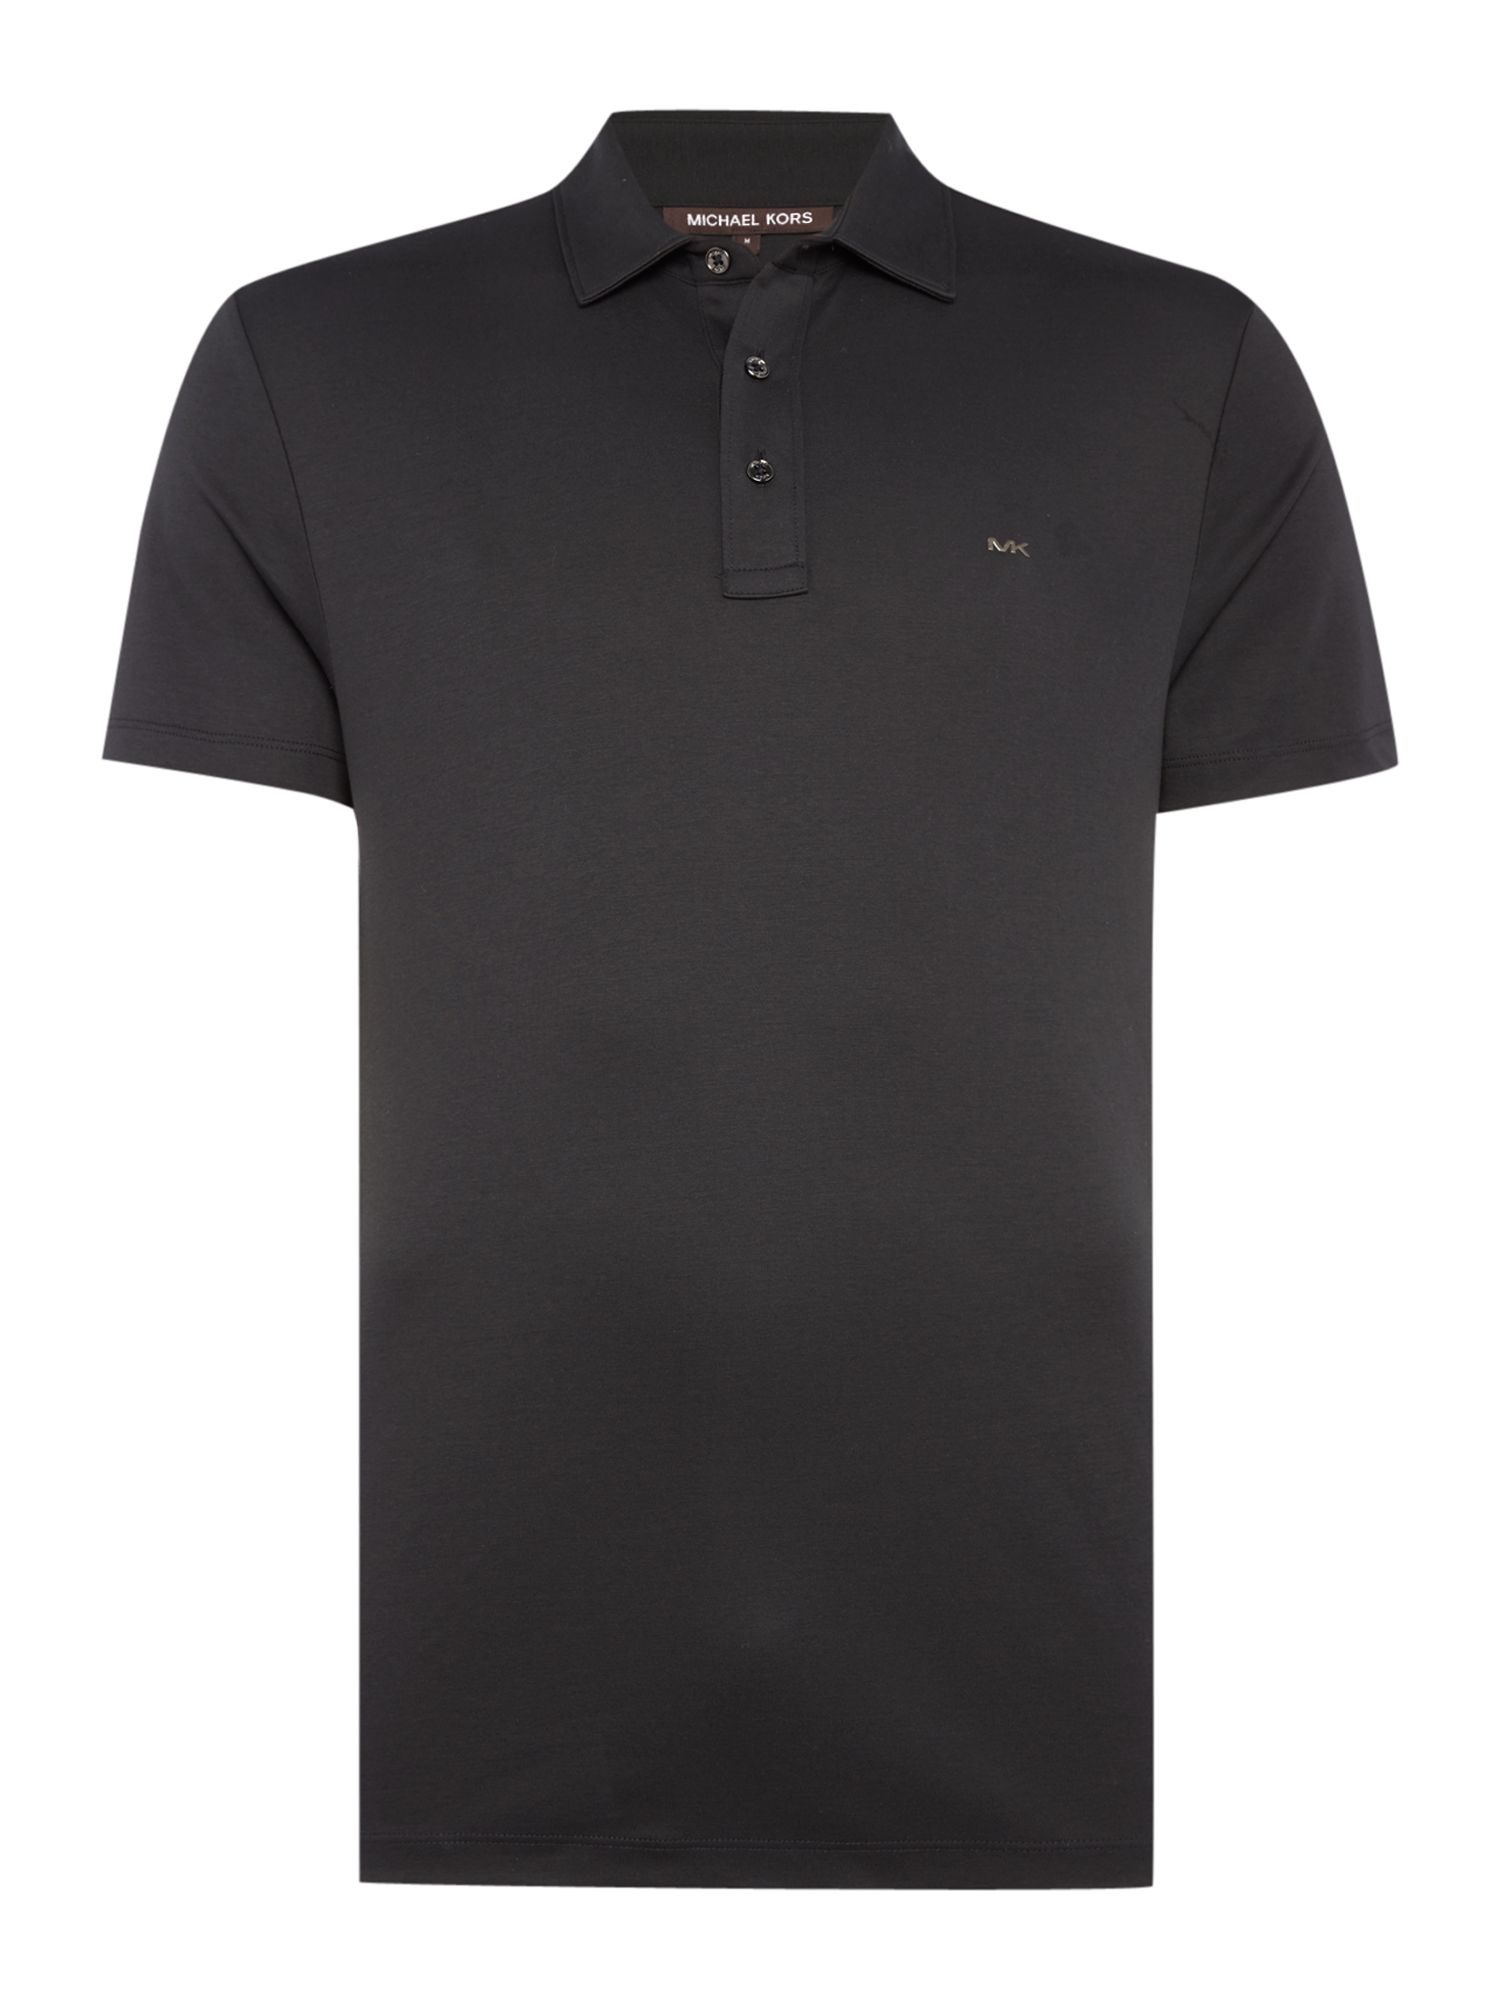 Men's Michael Kors Slim fit sleek MK logo polo shirt, Black